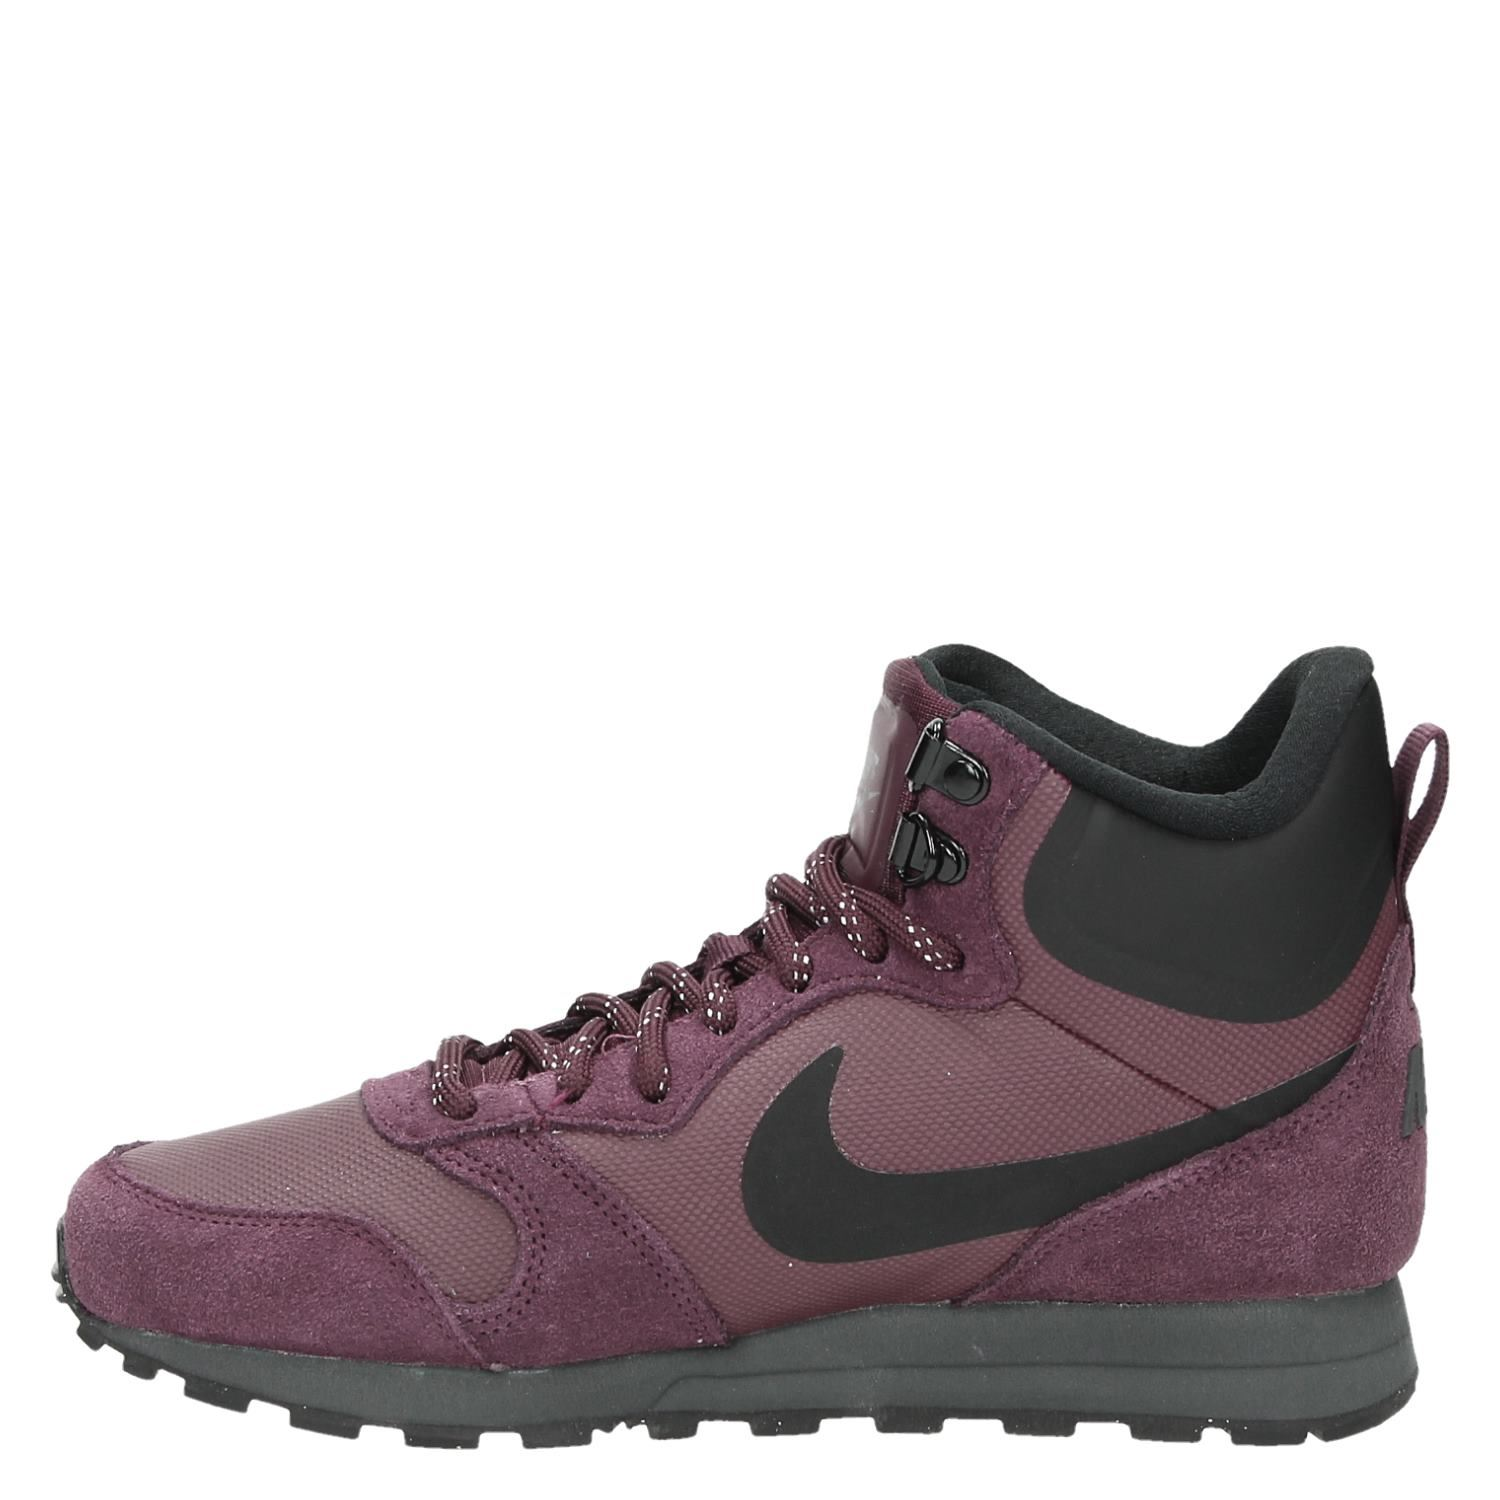 d50a60b1fa9 Nike MD Runner 2 Mid dames hoge sneakers rood